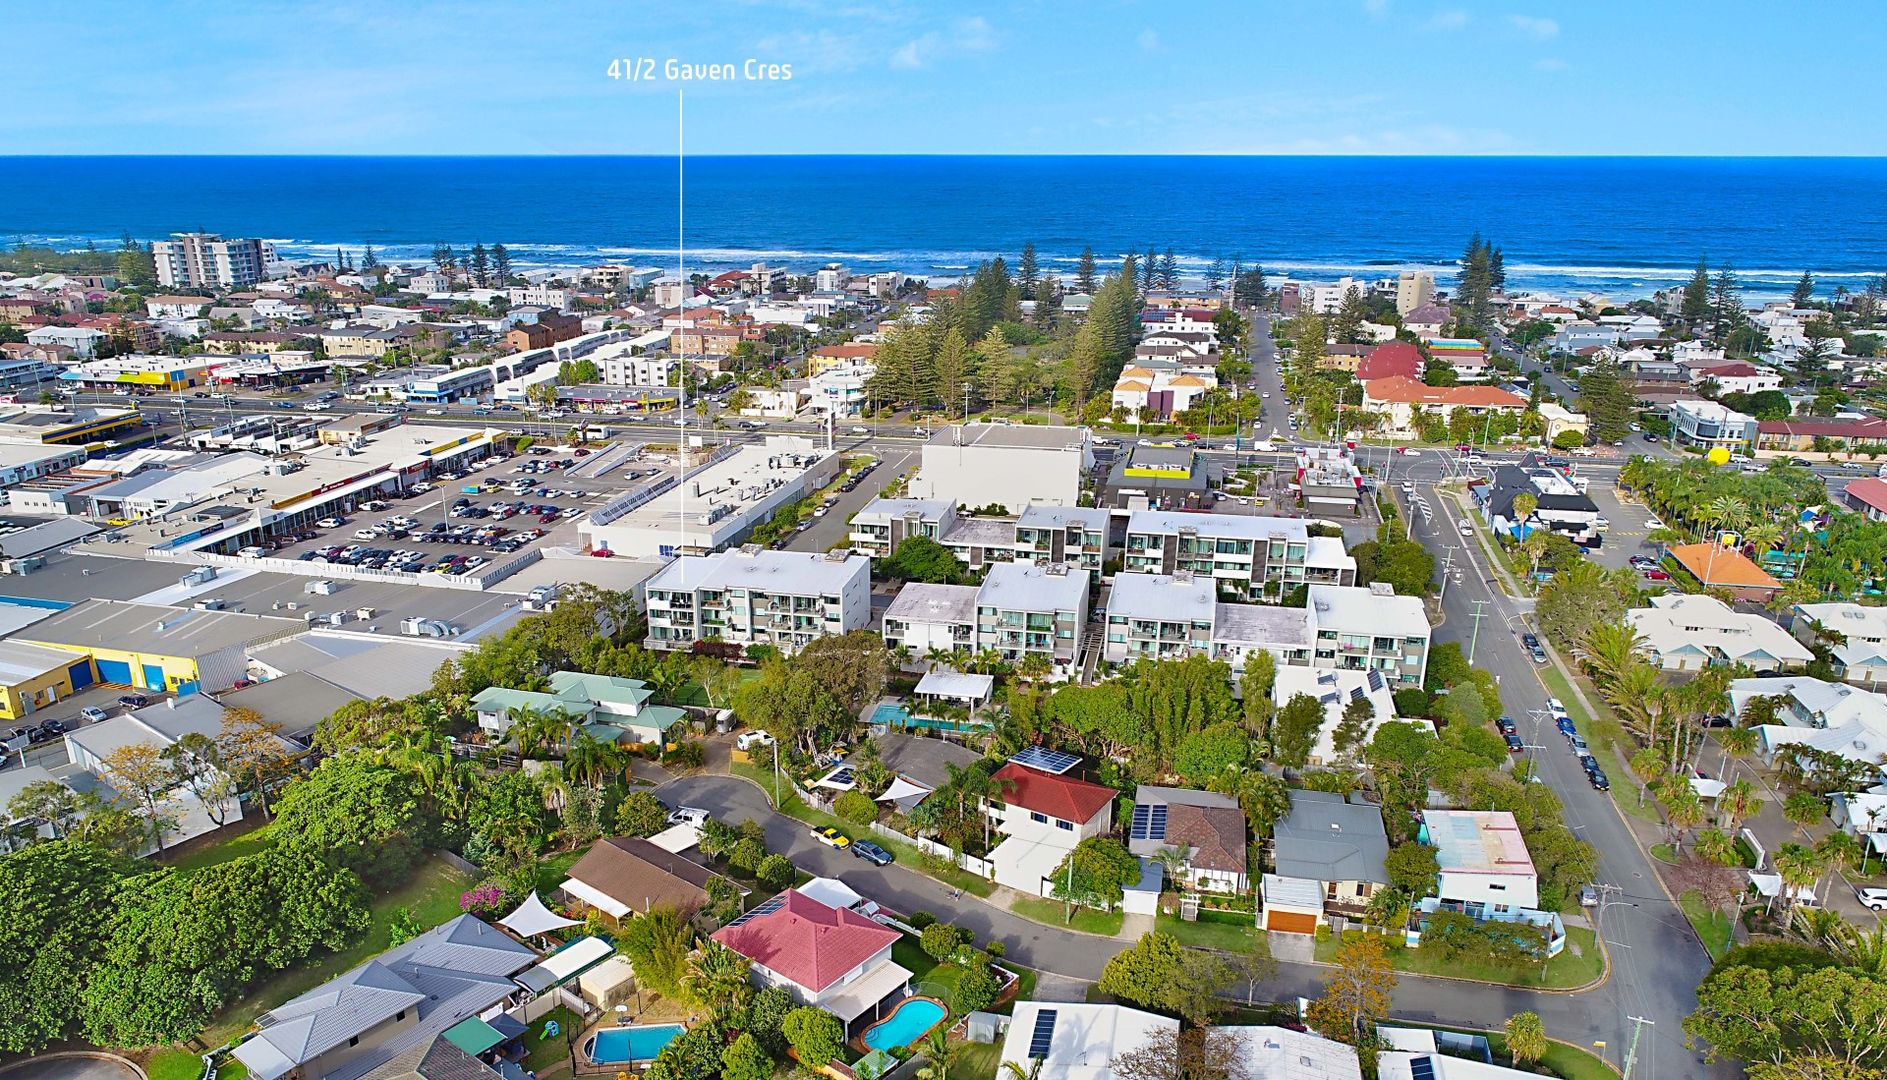 41/2 Gaven Crescent, Mermaid Beach QLD 4218, Image 0